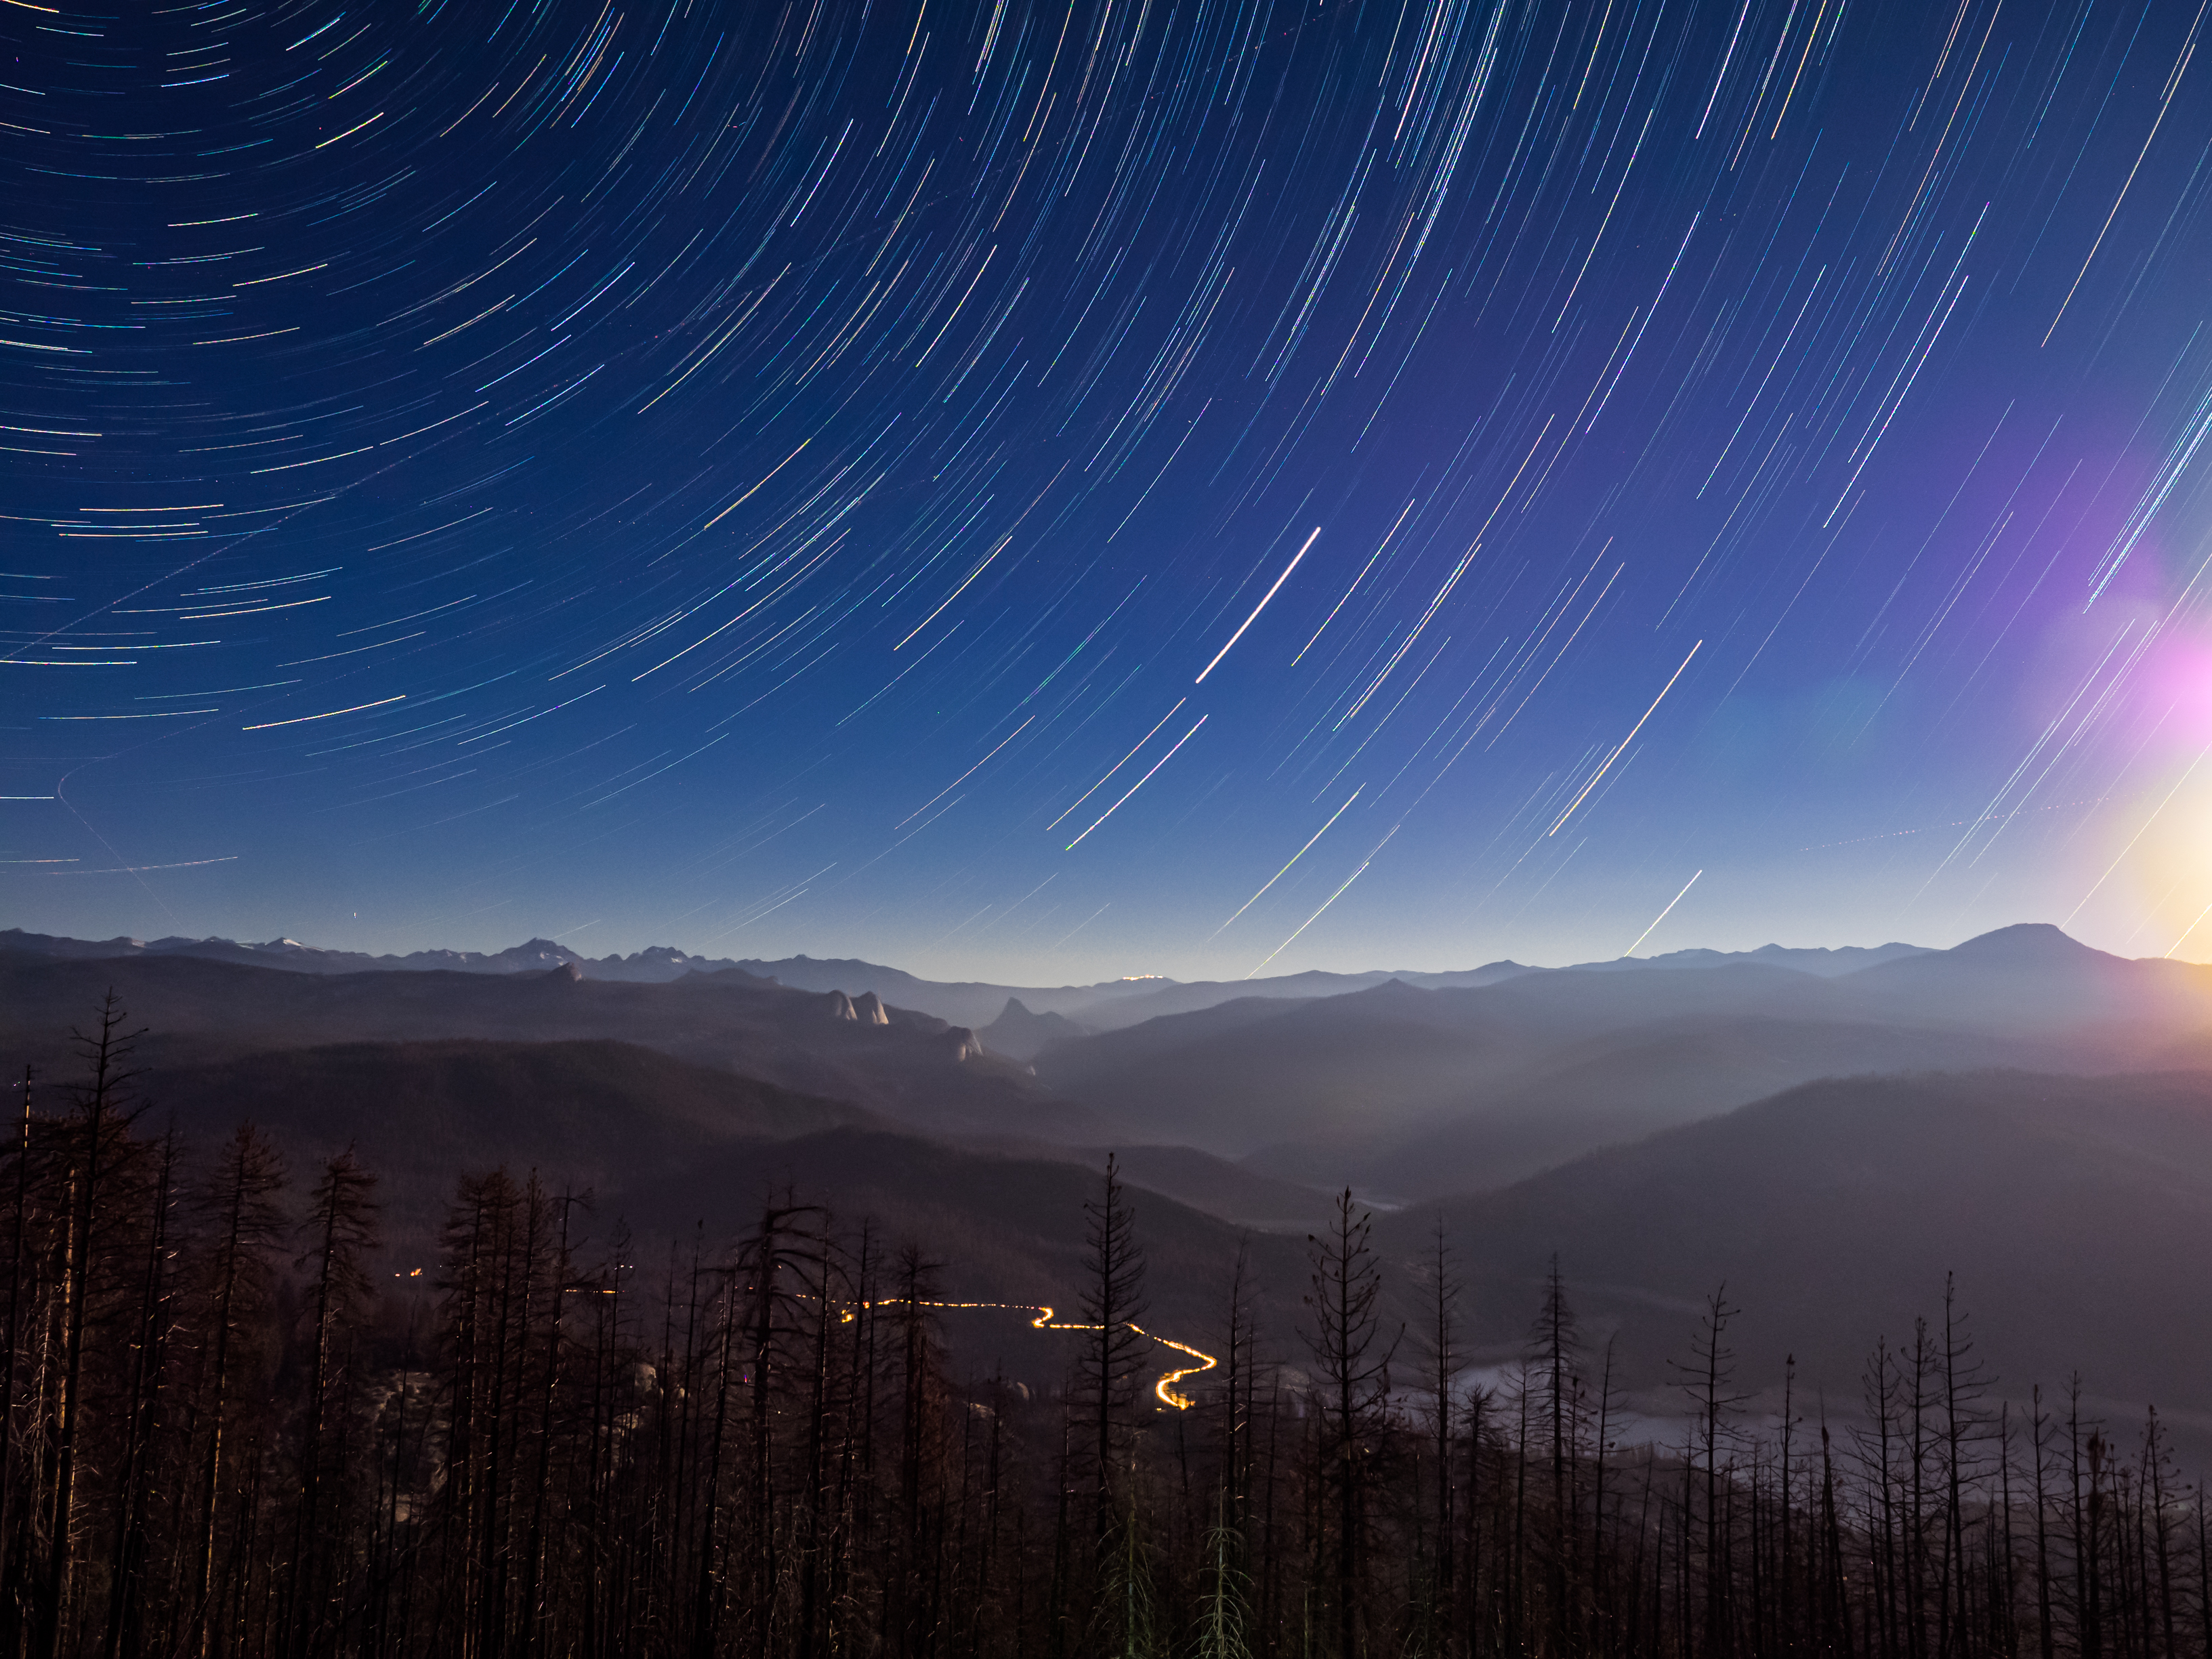 Star Trails over the Sierra Vista Scenic Byway